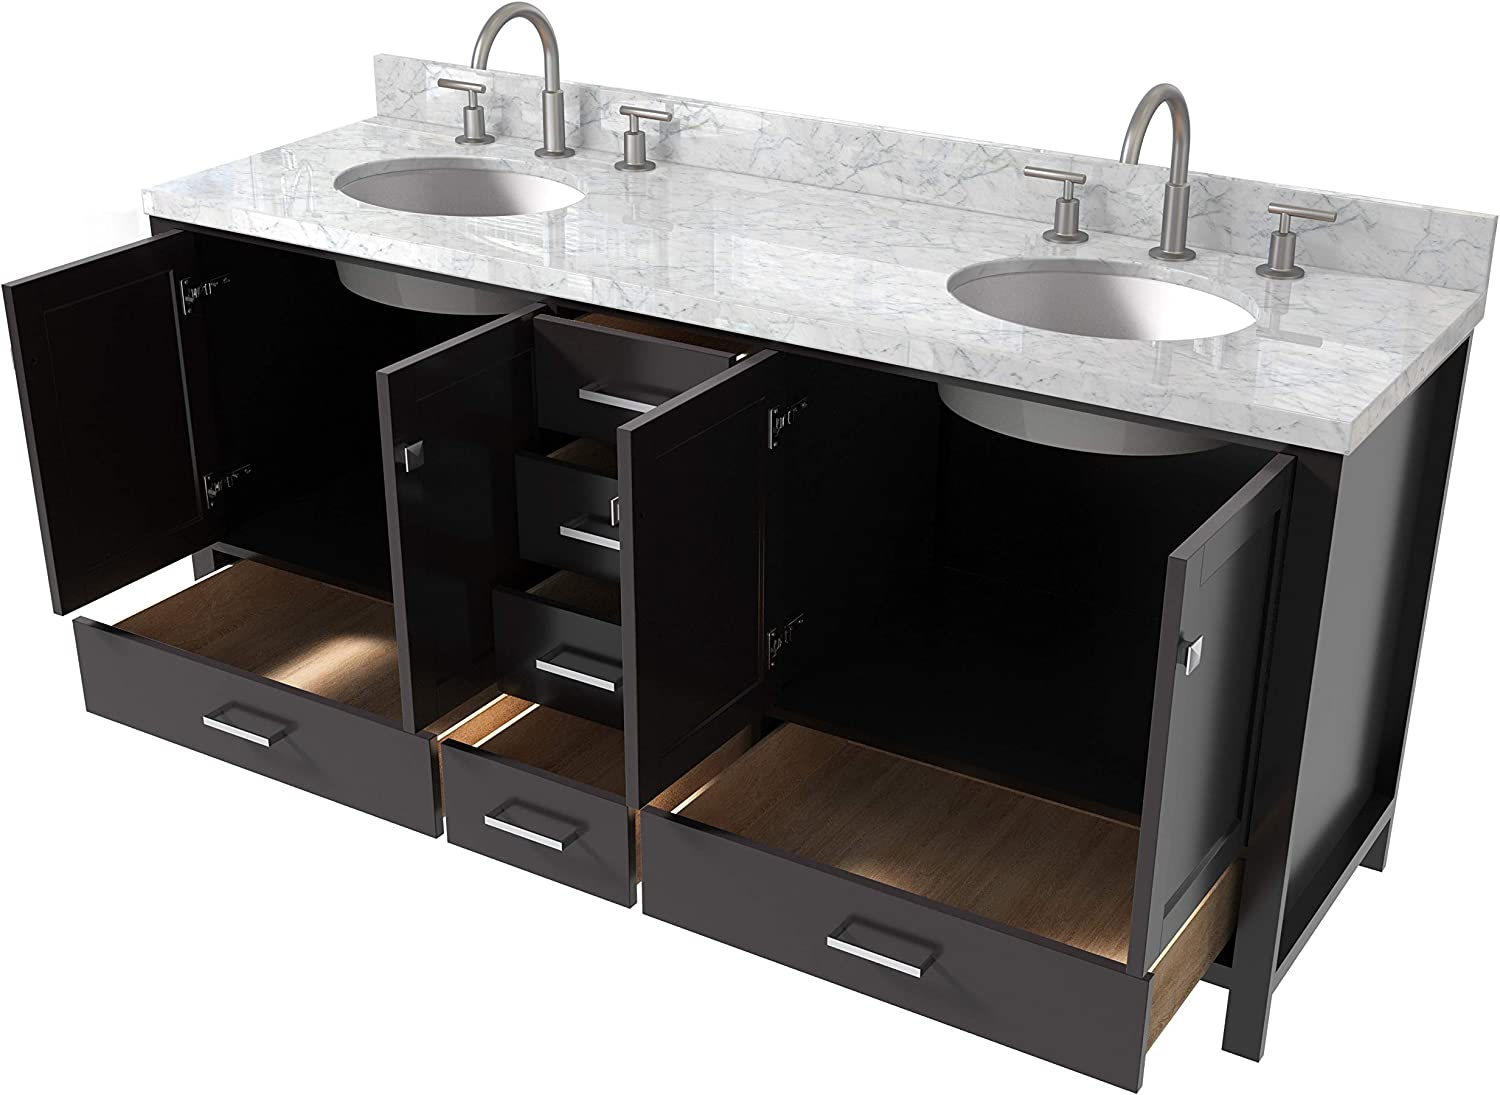 6 Full Extension Dovetail Drawers With Backplash  No Mirror ARIEL Bathroom Vanity 73 Inch Double Oval Sinks with Carrara White Marble Countertop in Espresso 4 Soft Closing Doors